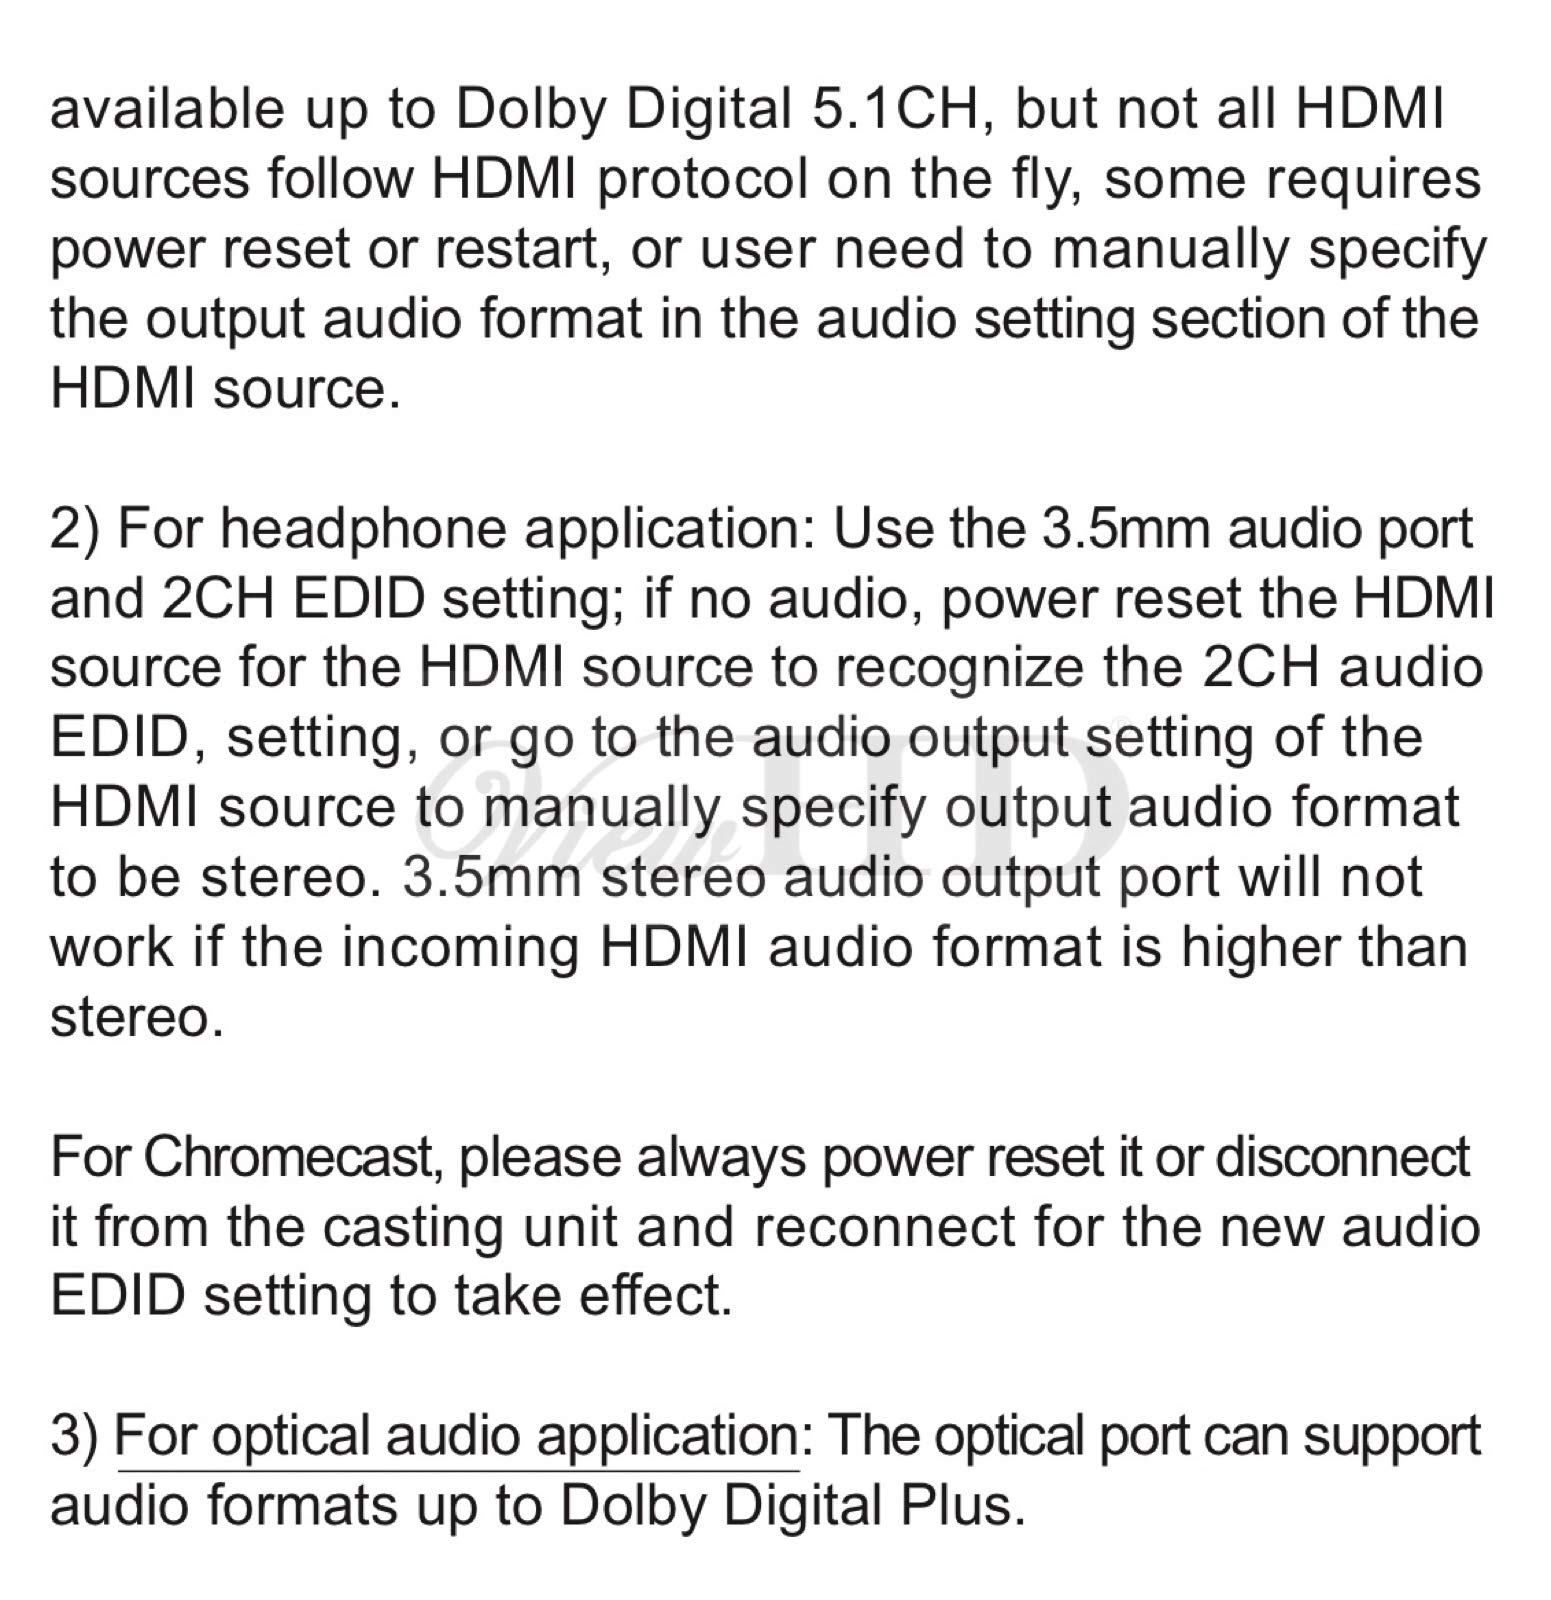 ViewHD UHD 18G HDMI Audio Extractor/Splitter Support HDMI v2.0 | HDCP v2.2 | 4K@60Hz | HDR | ARC | 3.5MM Analog Audio Output | Toslink Optical Audio Output | HDMI Audio Output | Model: VHD-UHAE2 by ViewHD (Image #6)